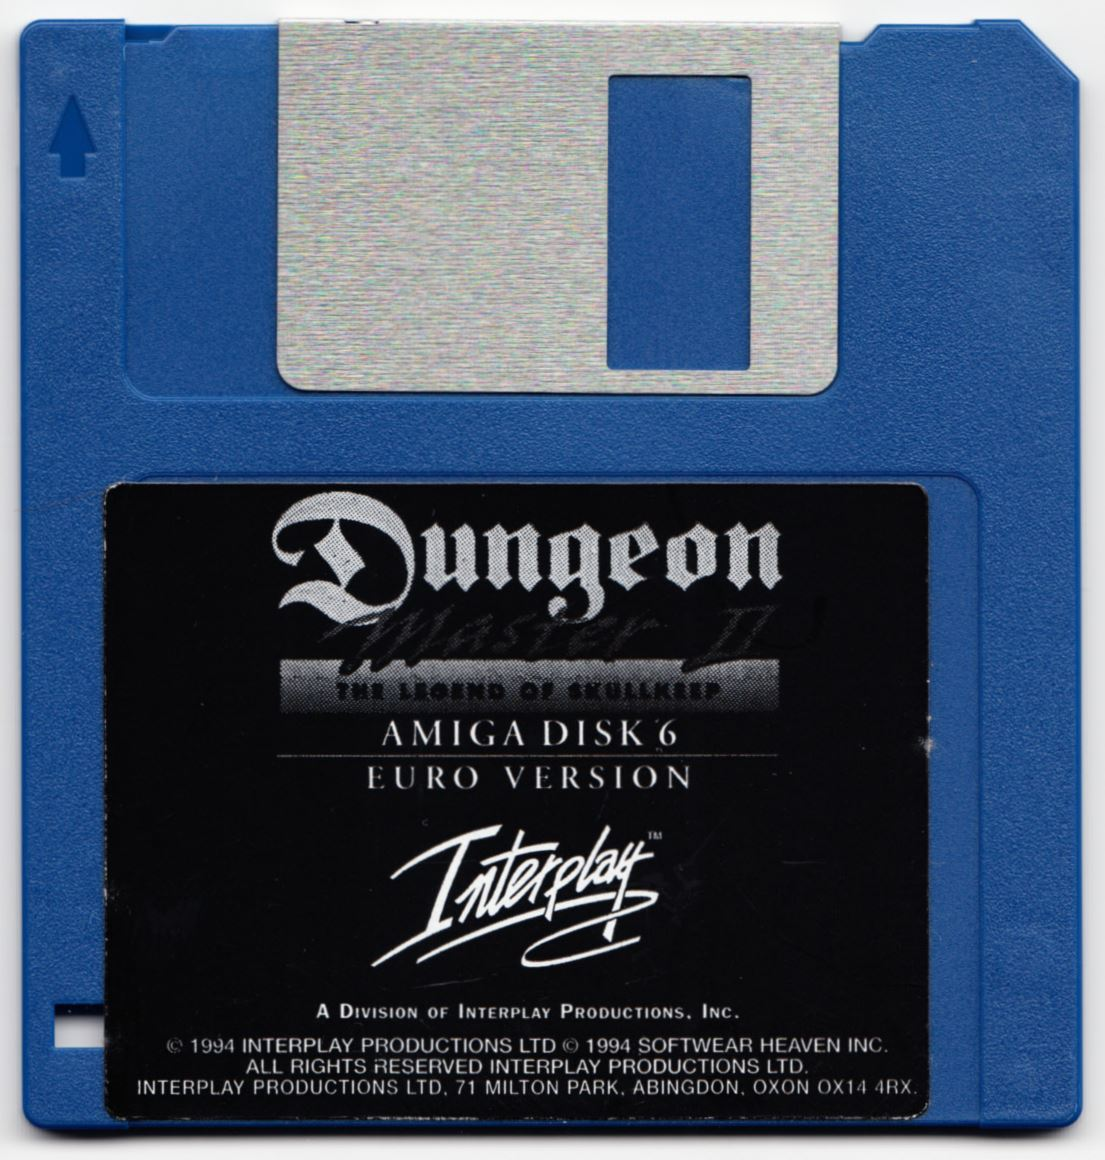 Game - Dungeon Master II - UK - Amiga - Disk 6 - Front - Scan